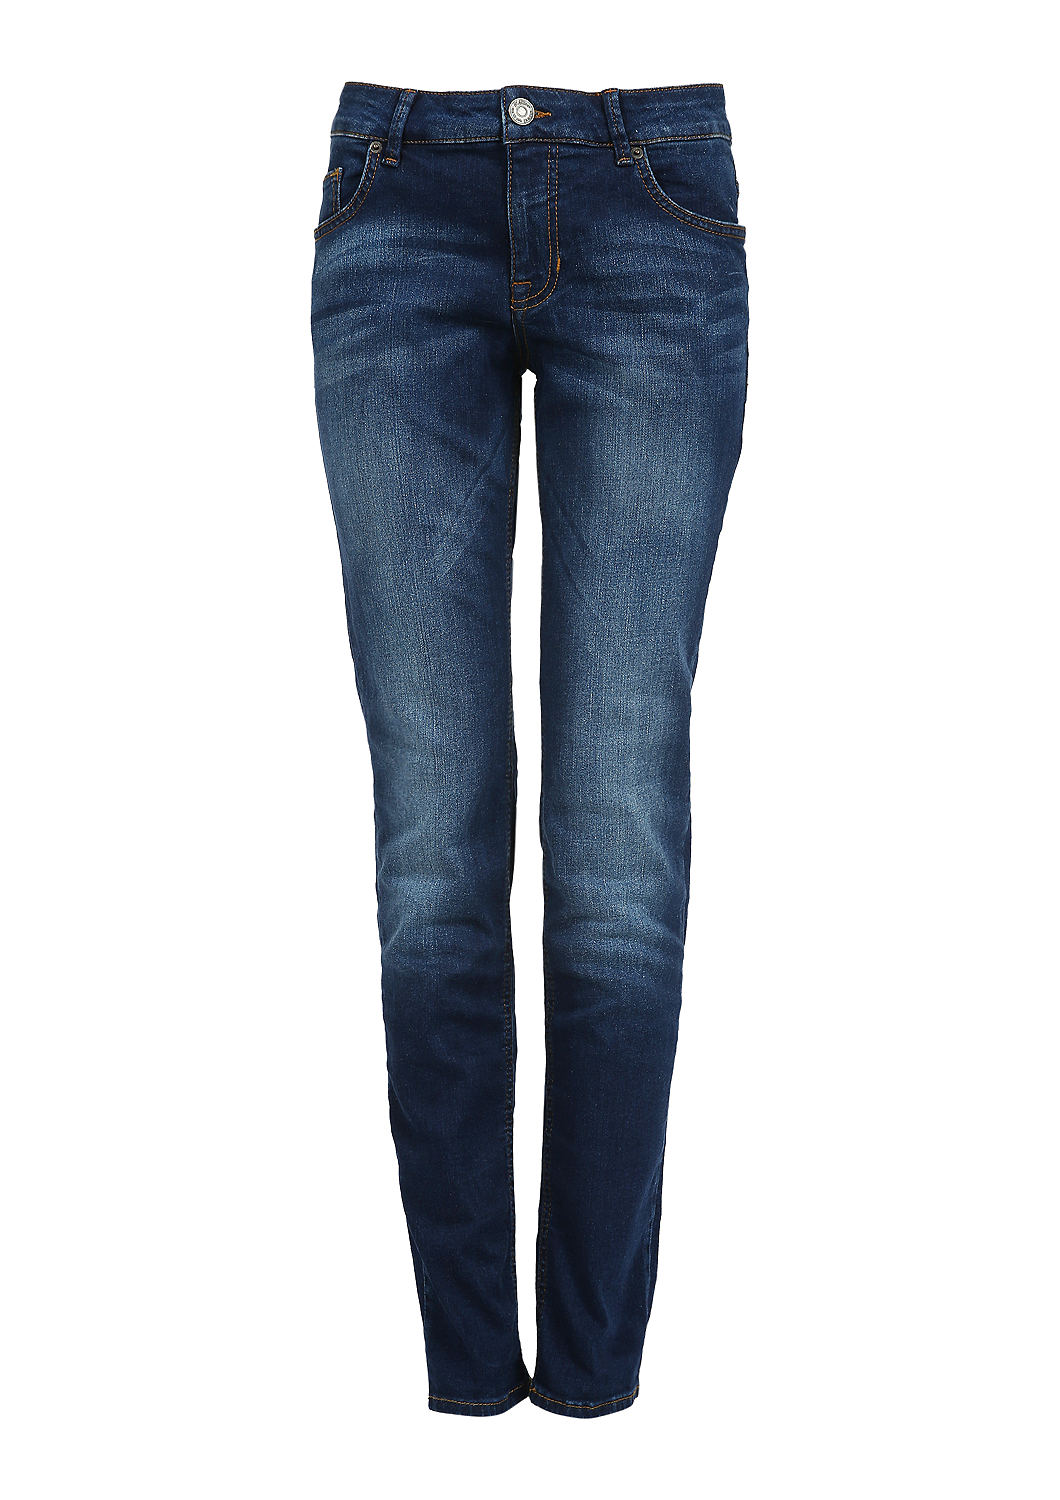 d2be2fb84 Buy Tube  stretchy blue jeans